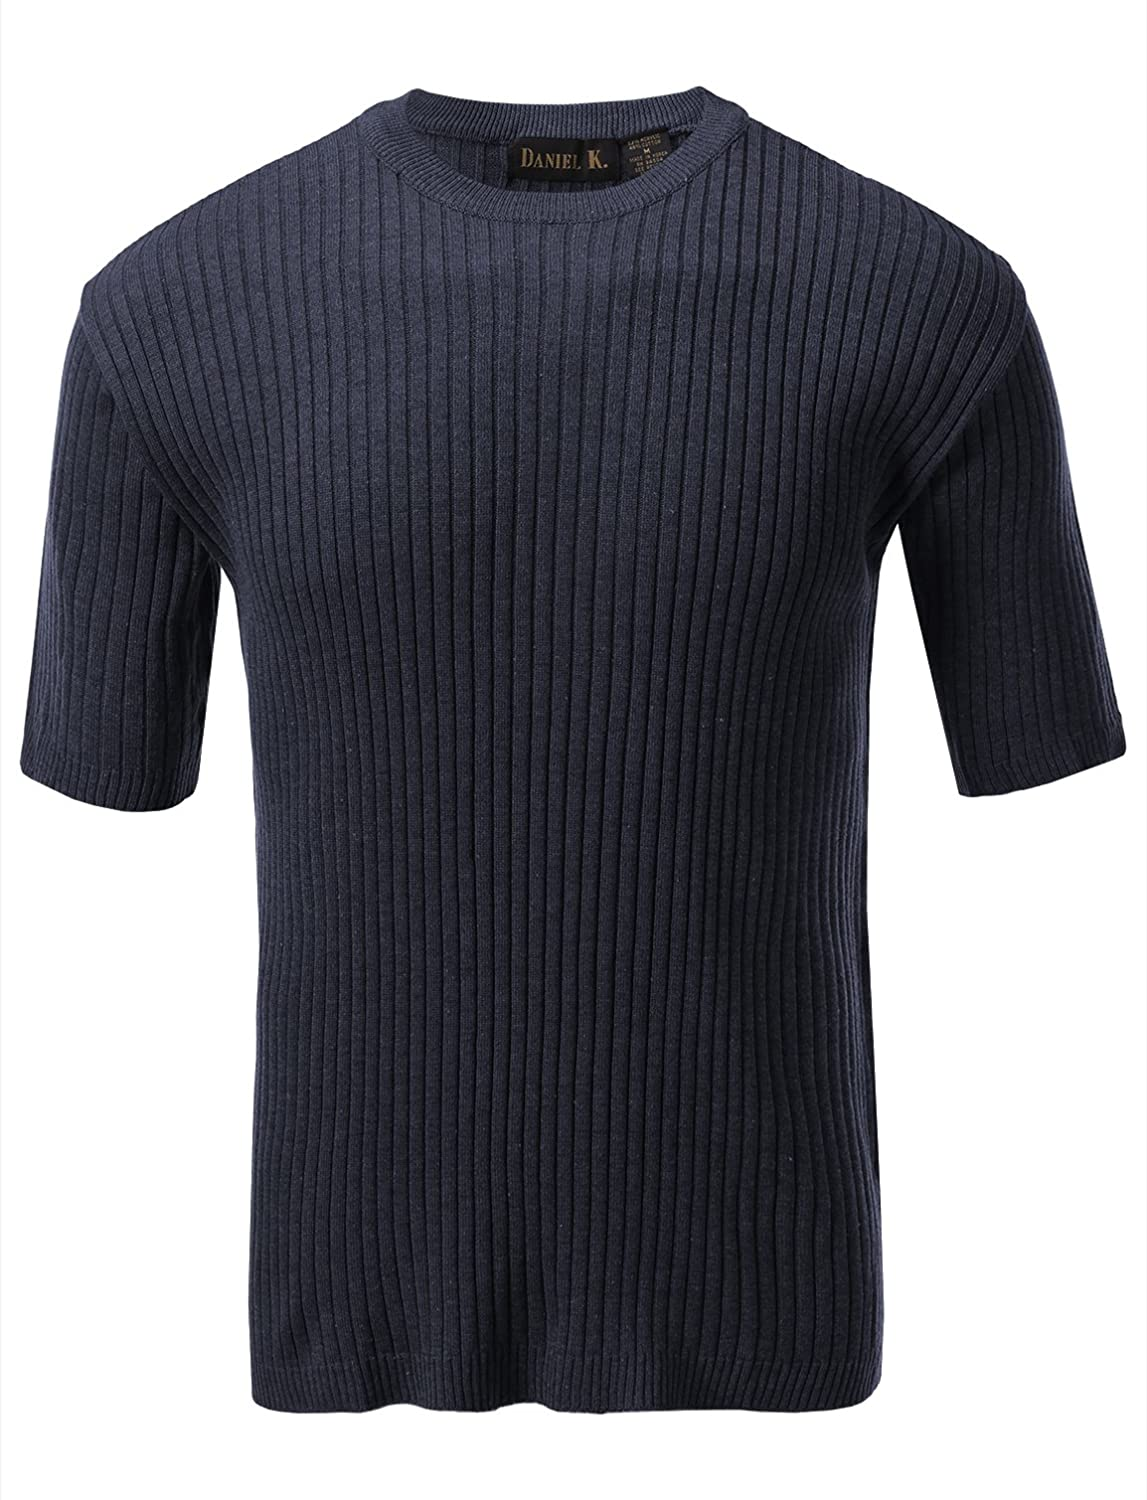 7 Encounter Men's Crewneck Short Sleeve Large Ribbed Sweater